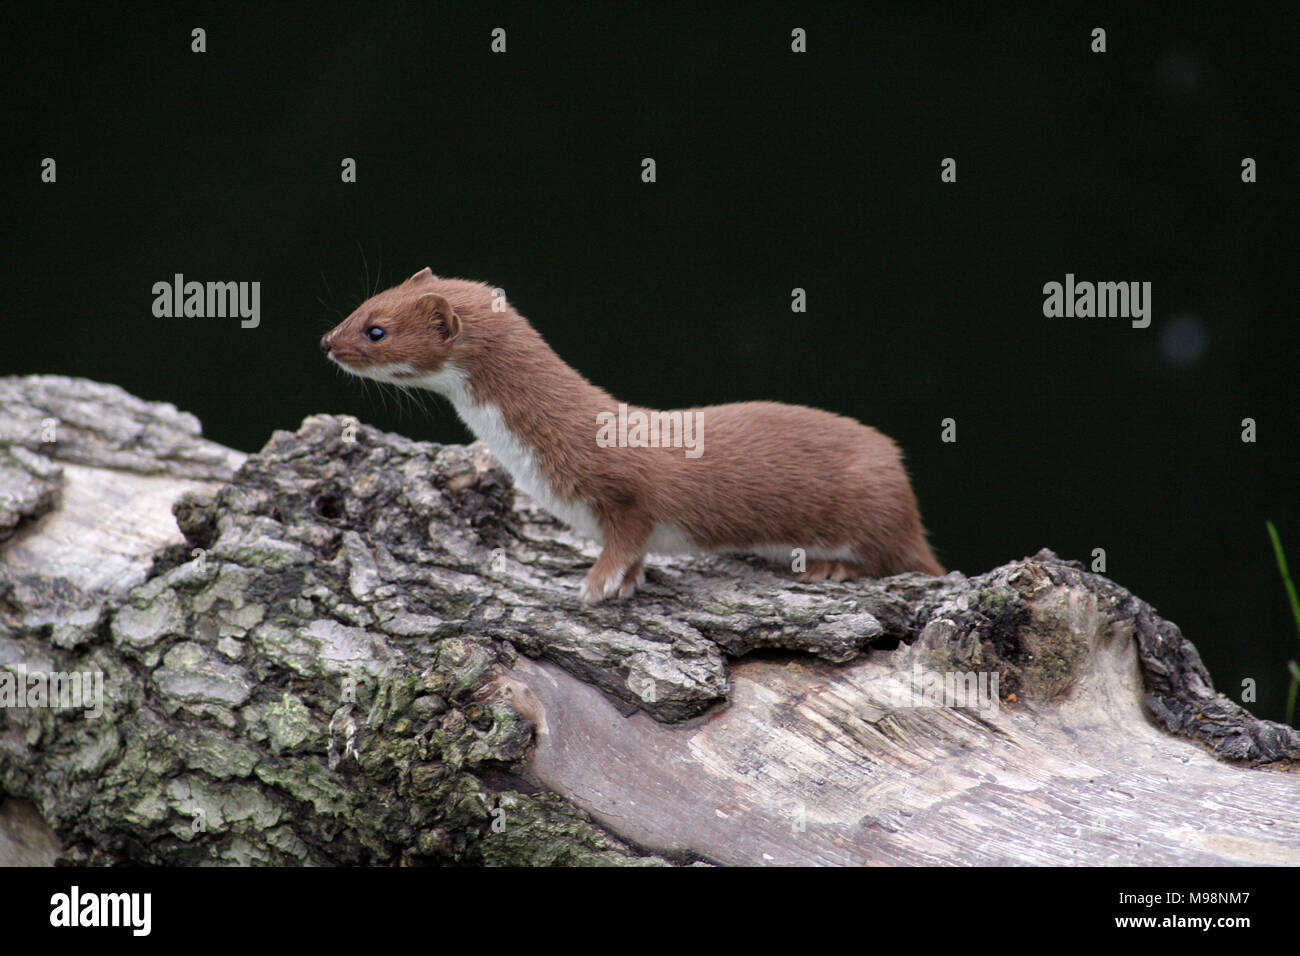 Weasels, Mustela nivalis, are related to stoats and are found across the UK, Europe& Asia. A ferocious hunter it is known folklore from England to Jap Stock Photo